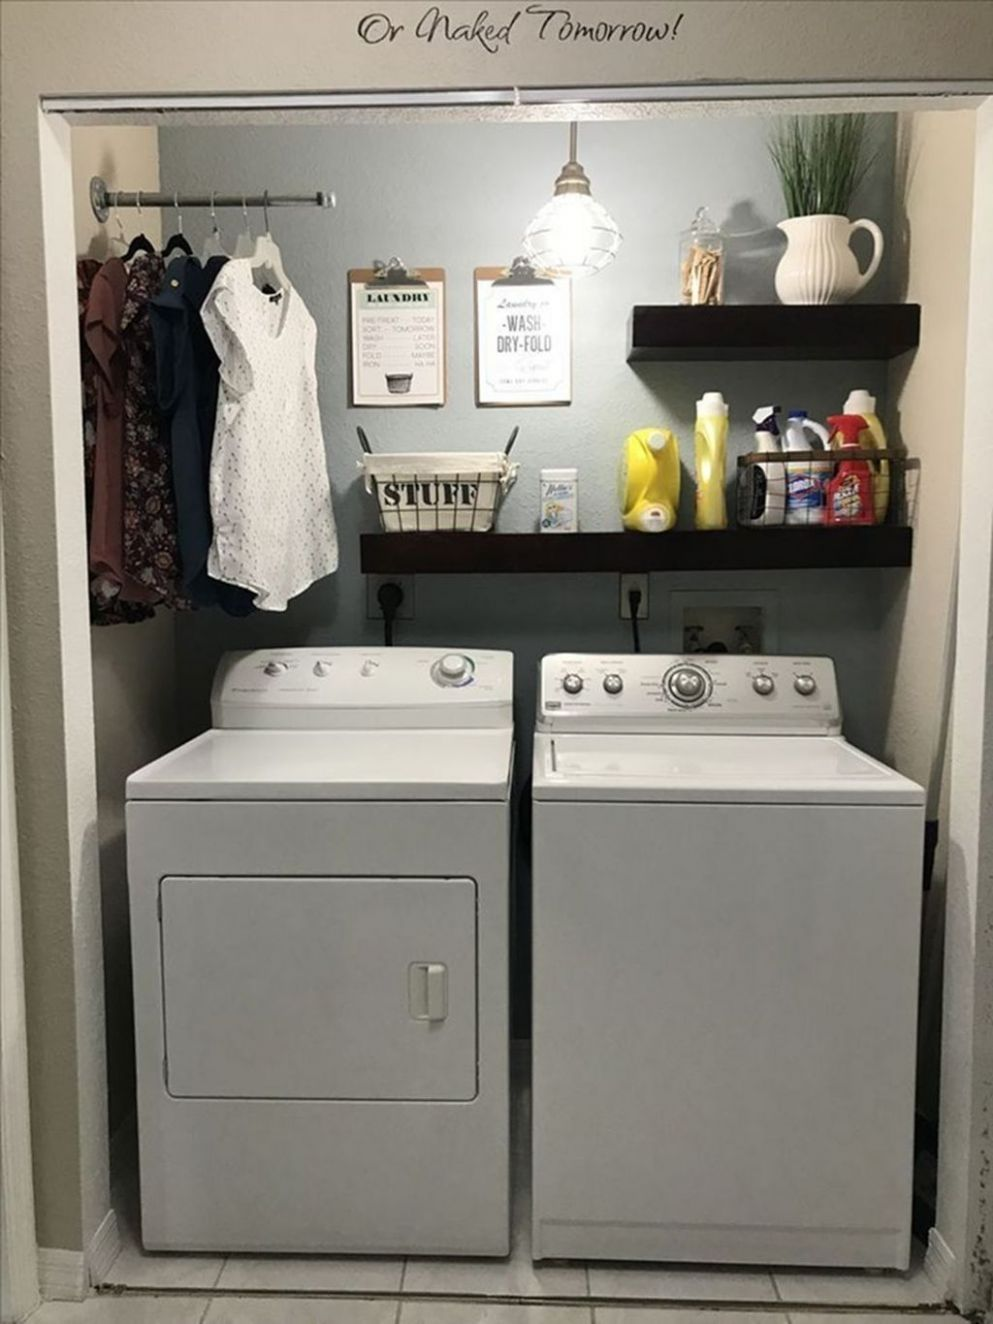 11 Minimalist Small Laundry Room Design And Decor Ideas | Laundry ...